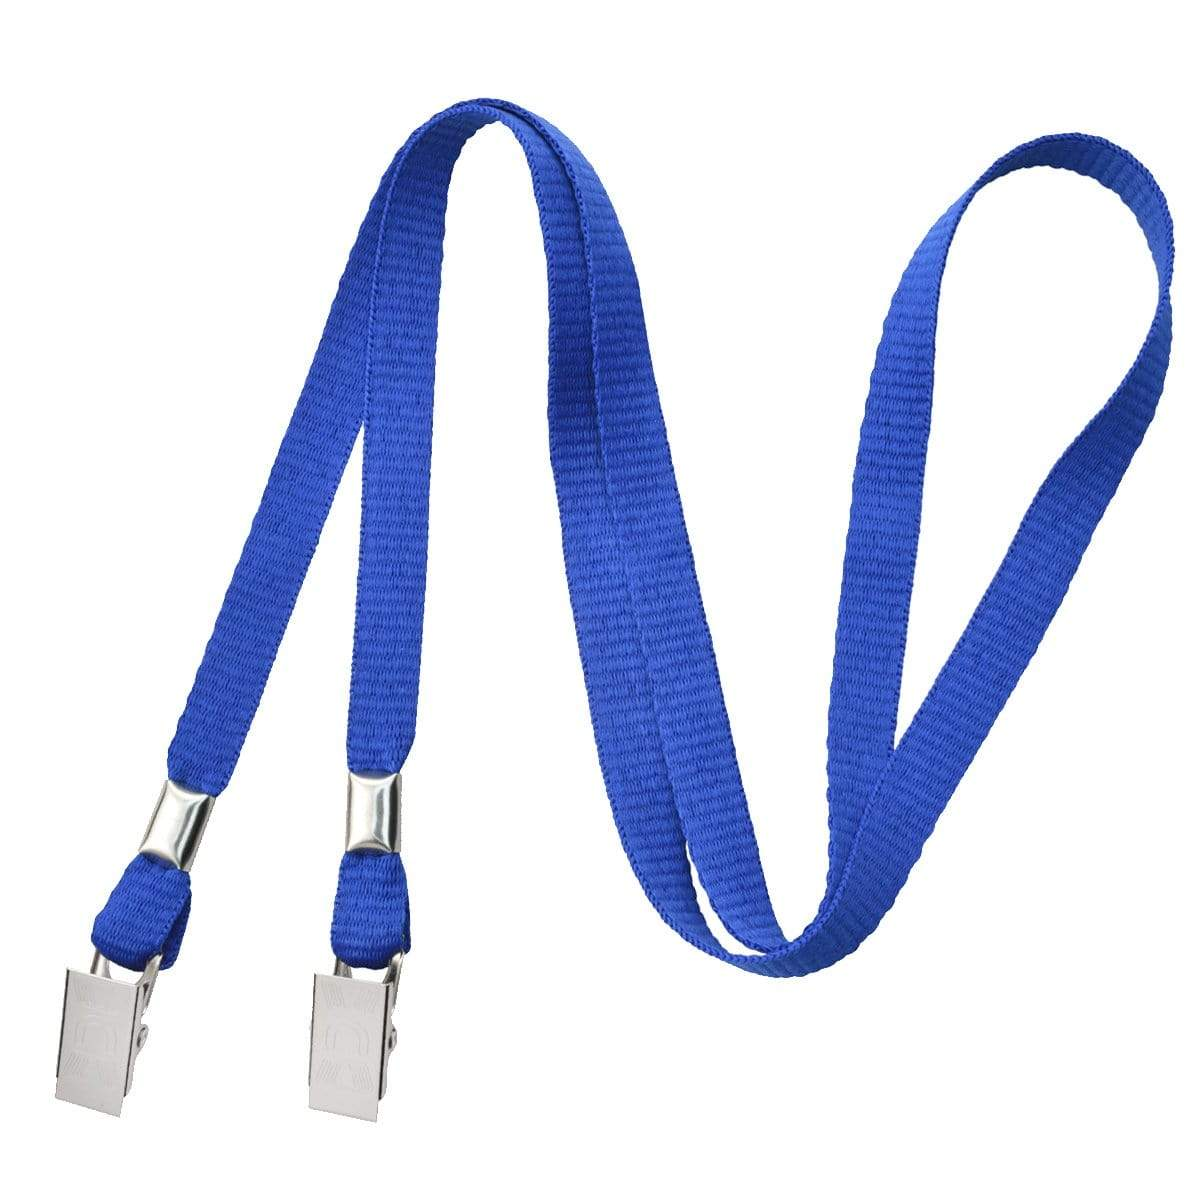 Face Mask Lanyard - Lightweight Facemask Neck Hanger & Ear Saver with 2 Bulldog Clips -  Soft Material (2140-530X)